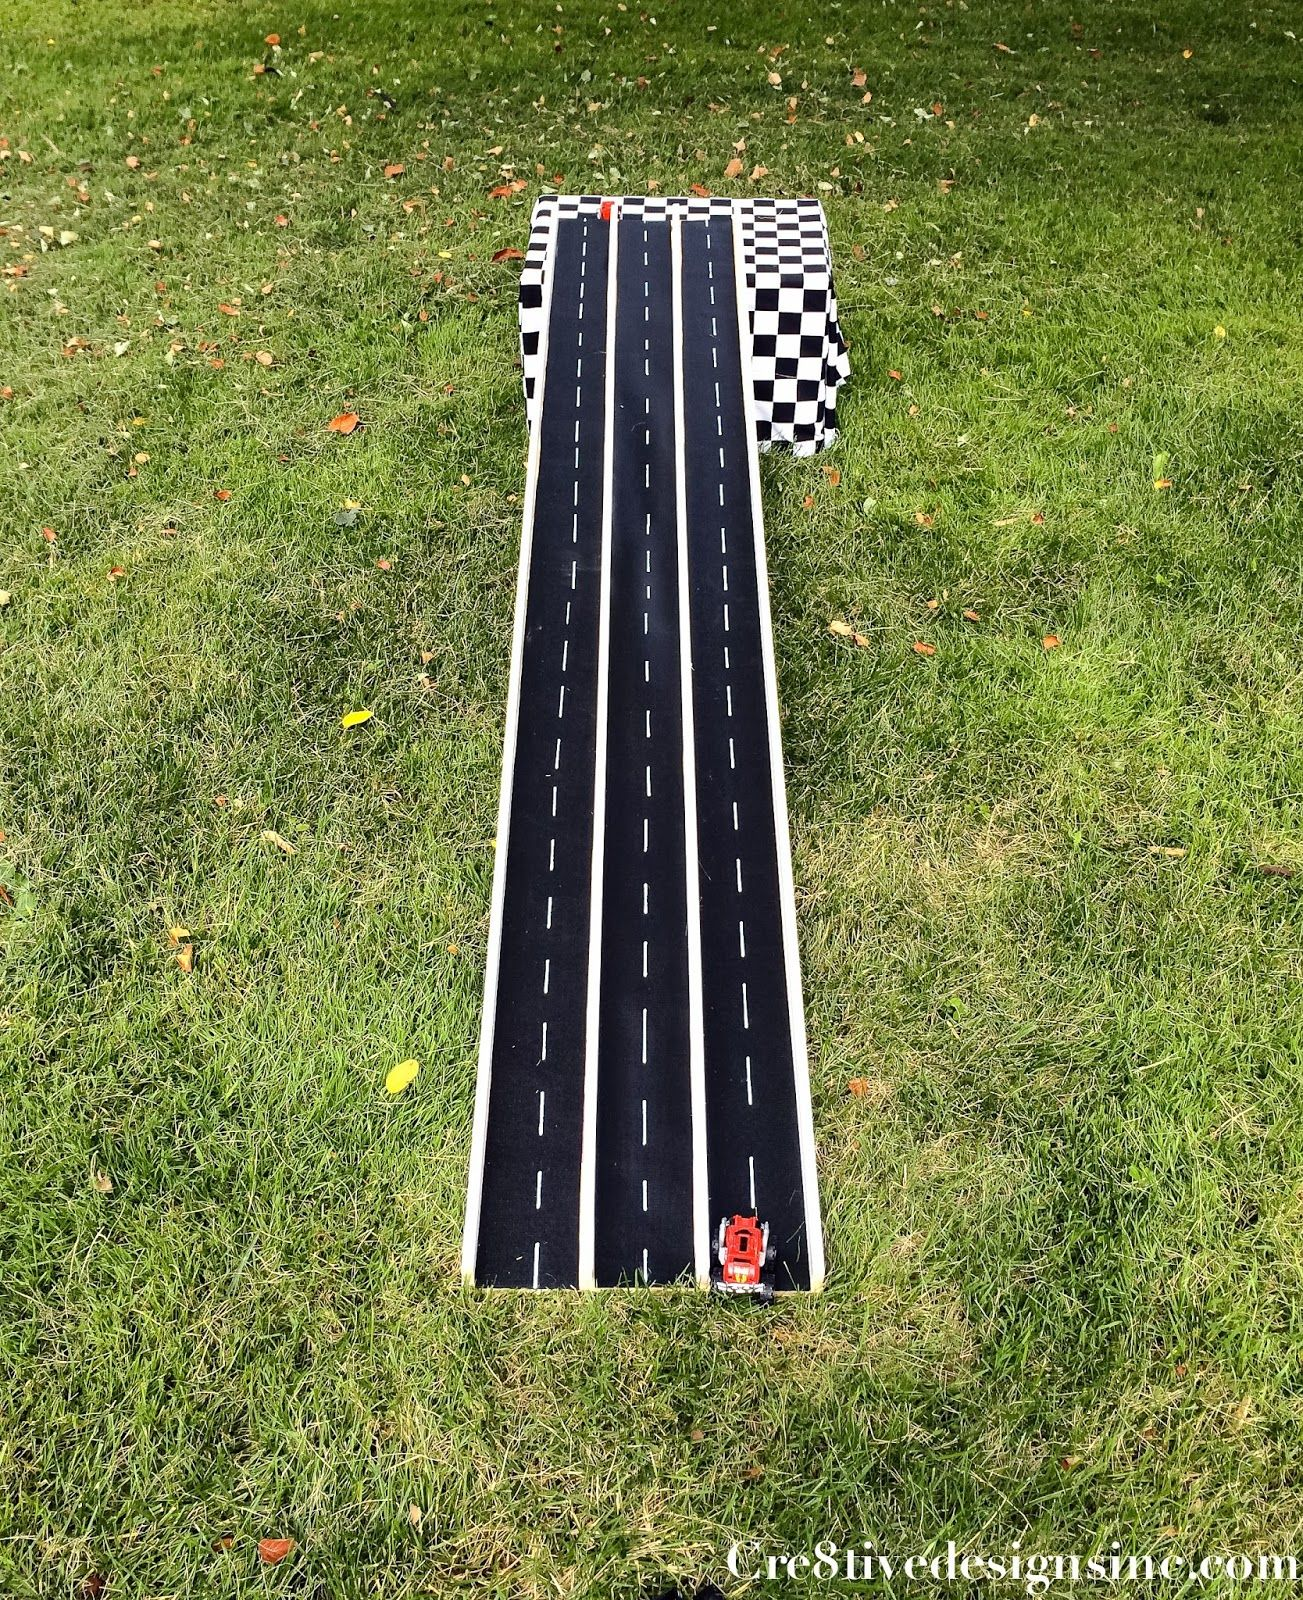 Backyard projects for kids diy race car track do it yourself backyard projects for kids diy race car track do it yourself solutioingenieria Images